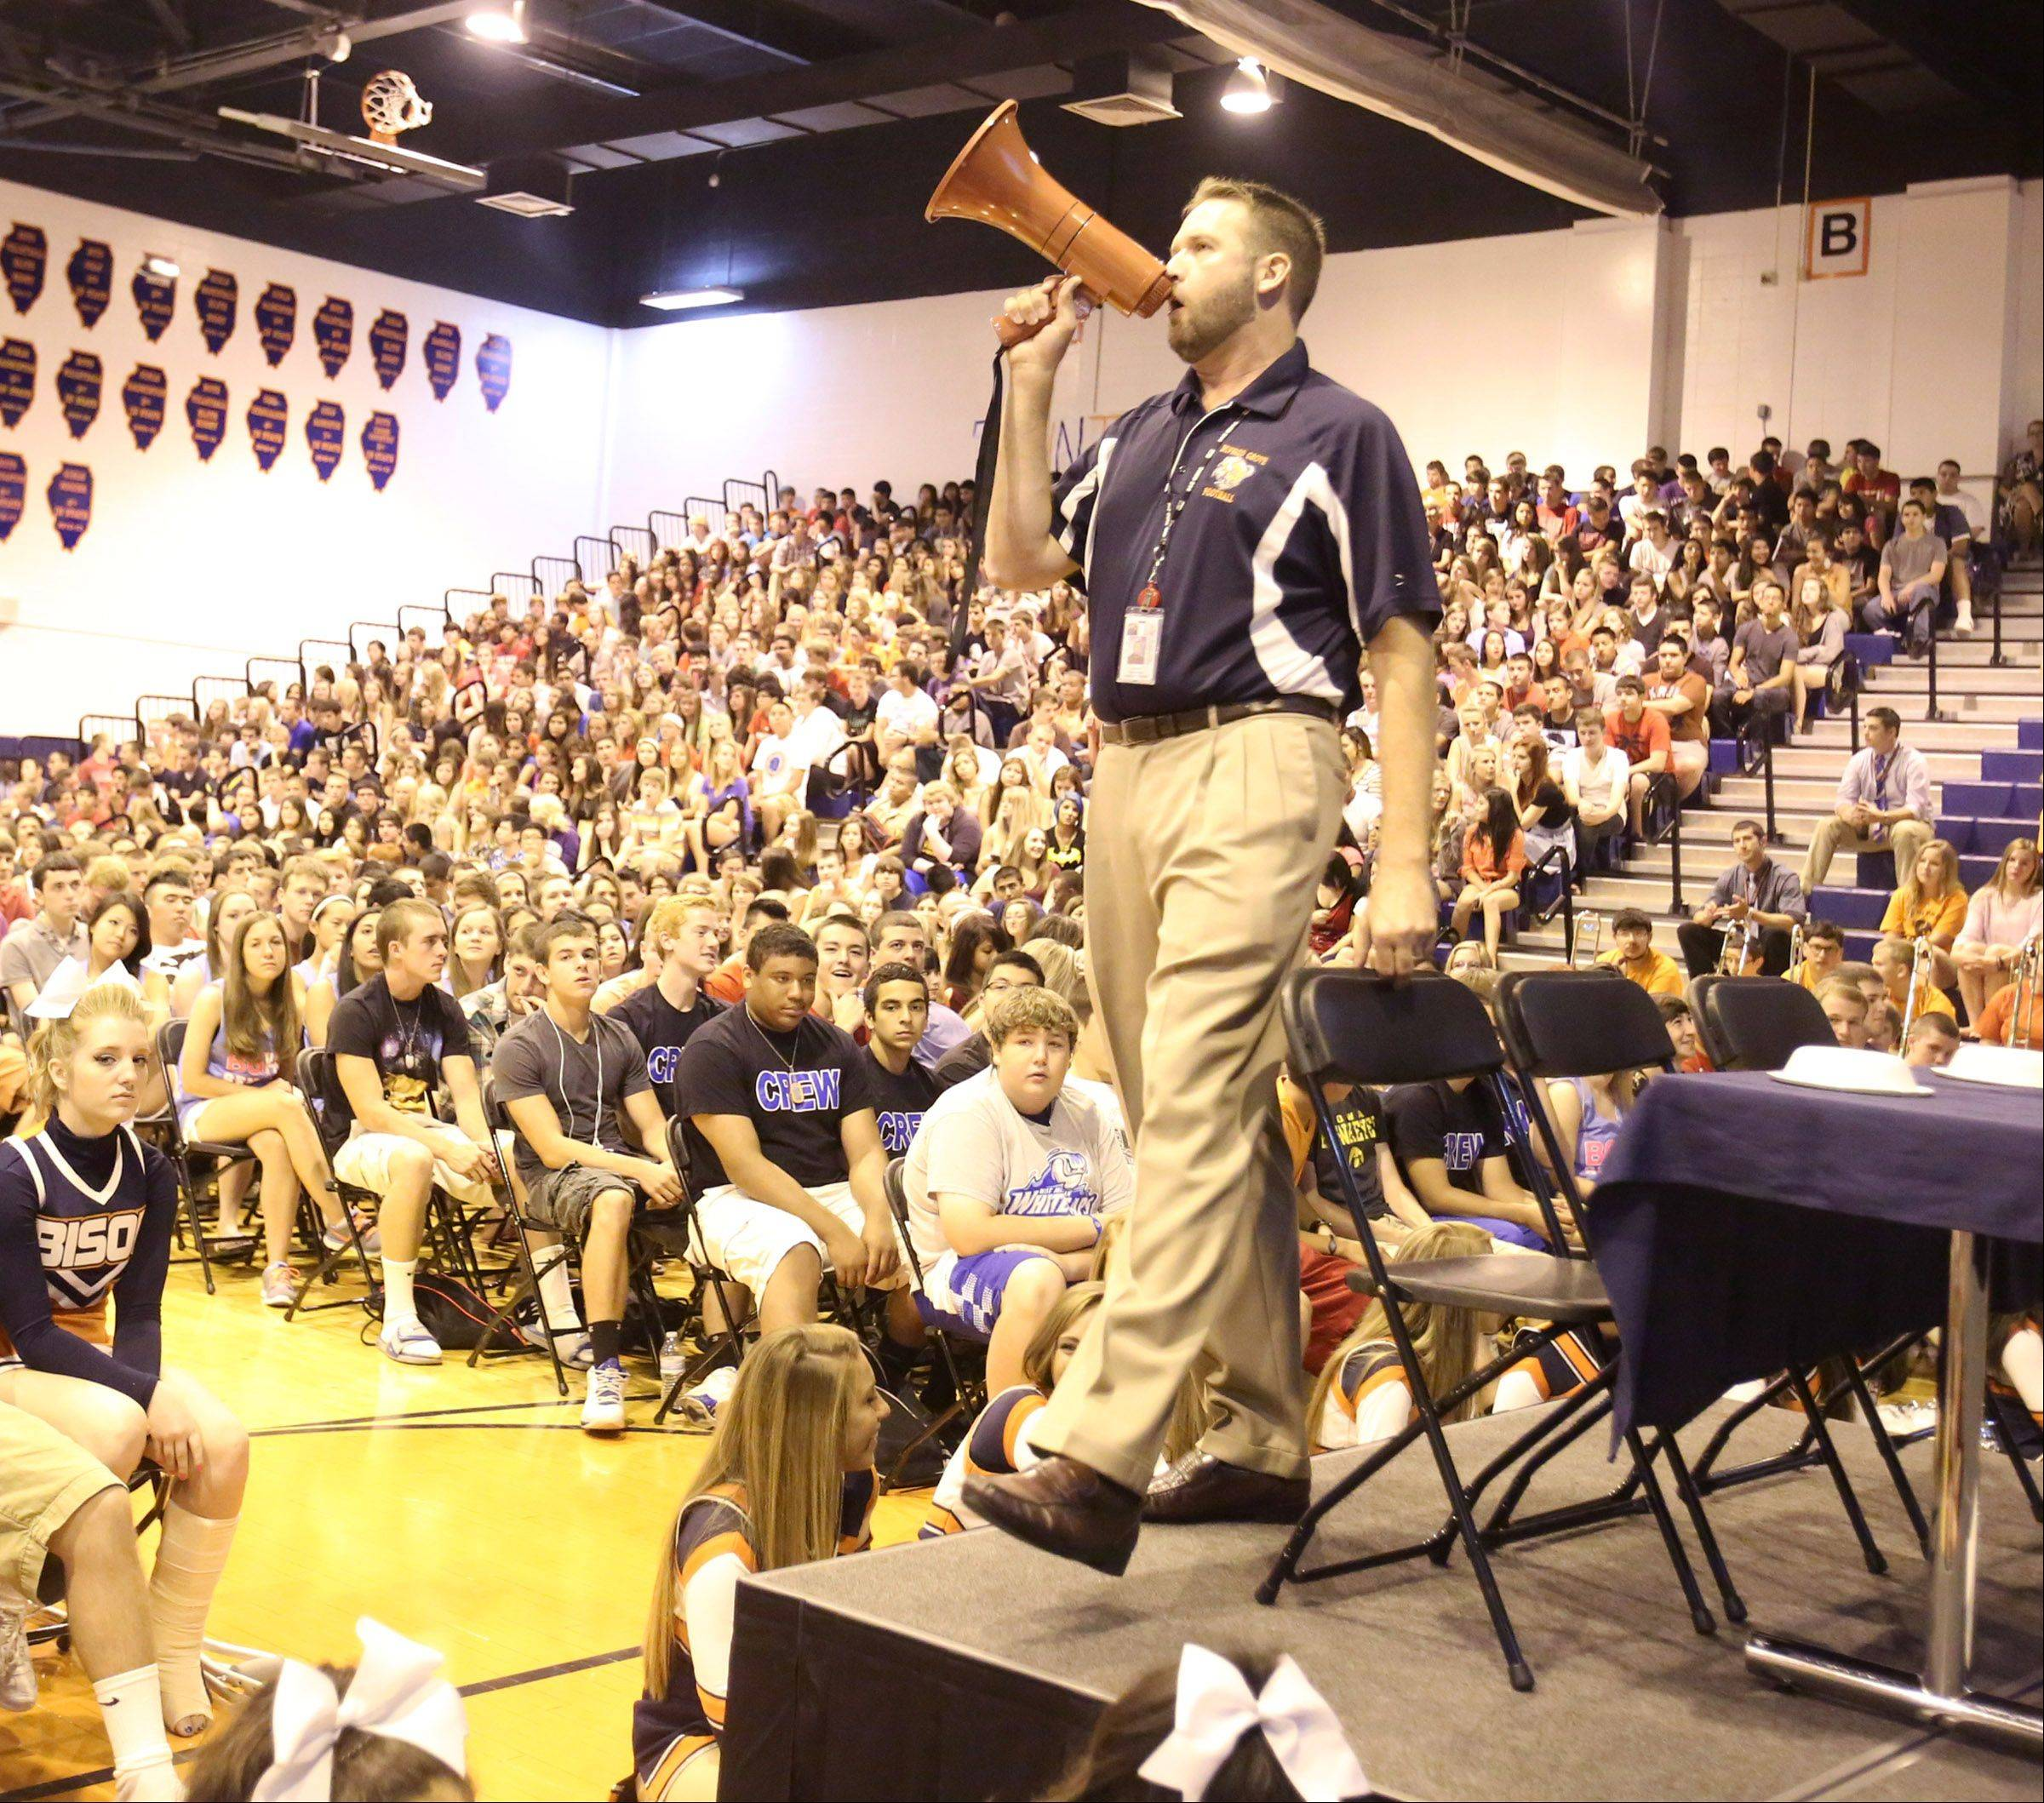 Assistant Principal Mark Schaetzlein gets on the megaphone at the morning pep rally.